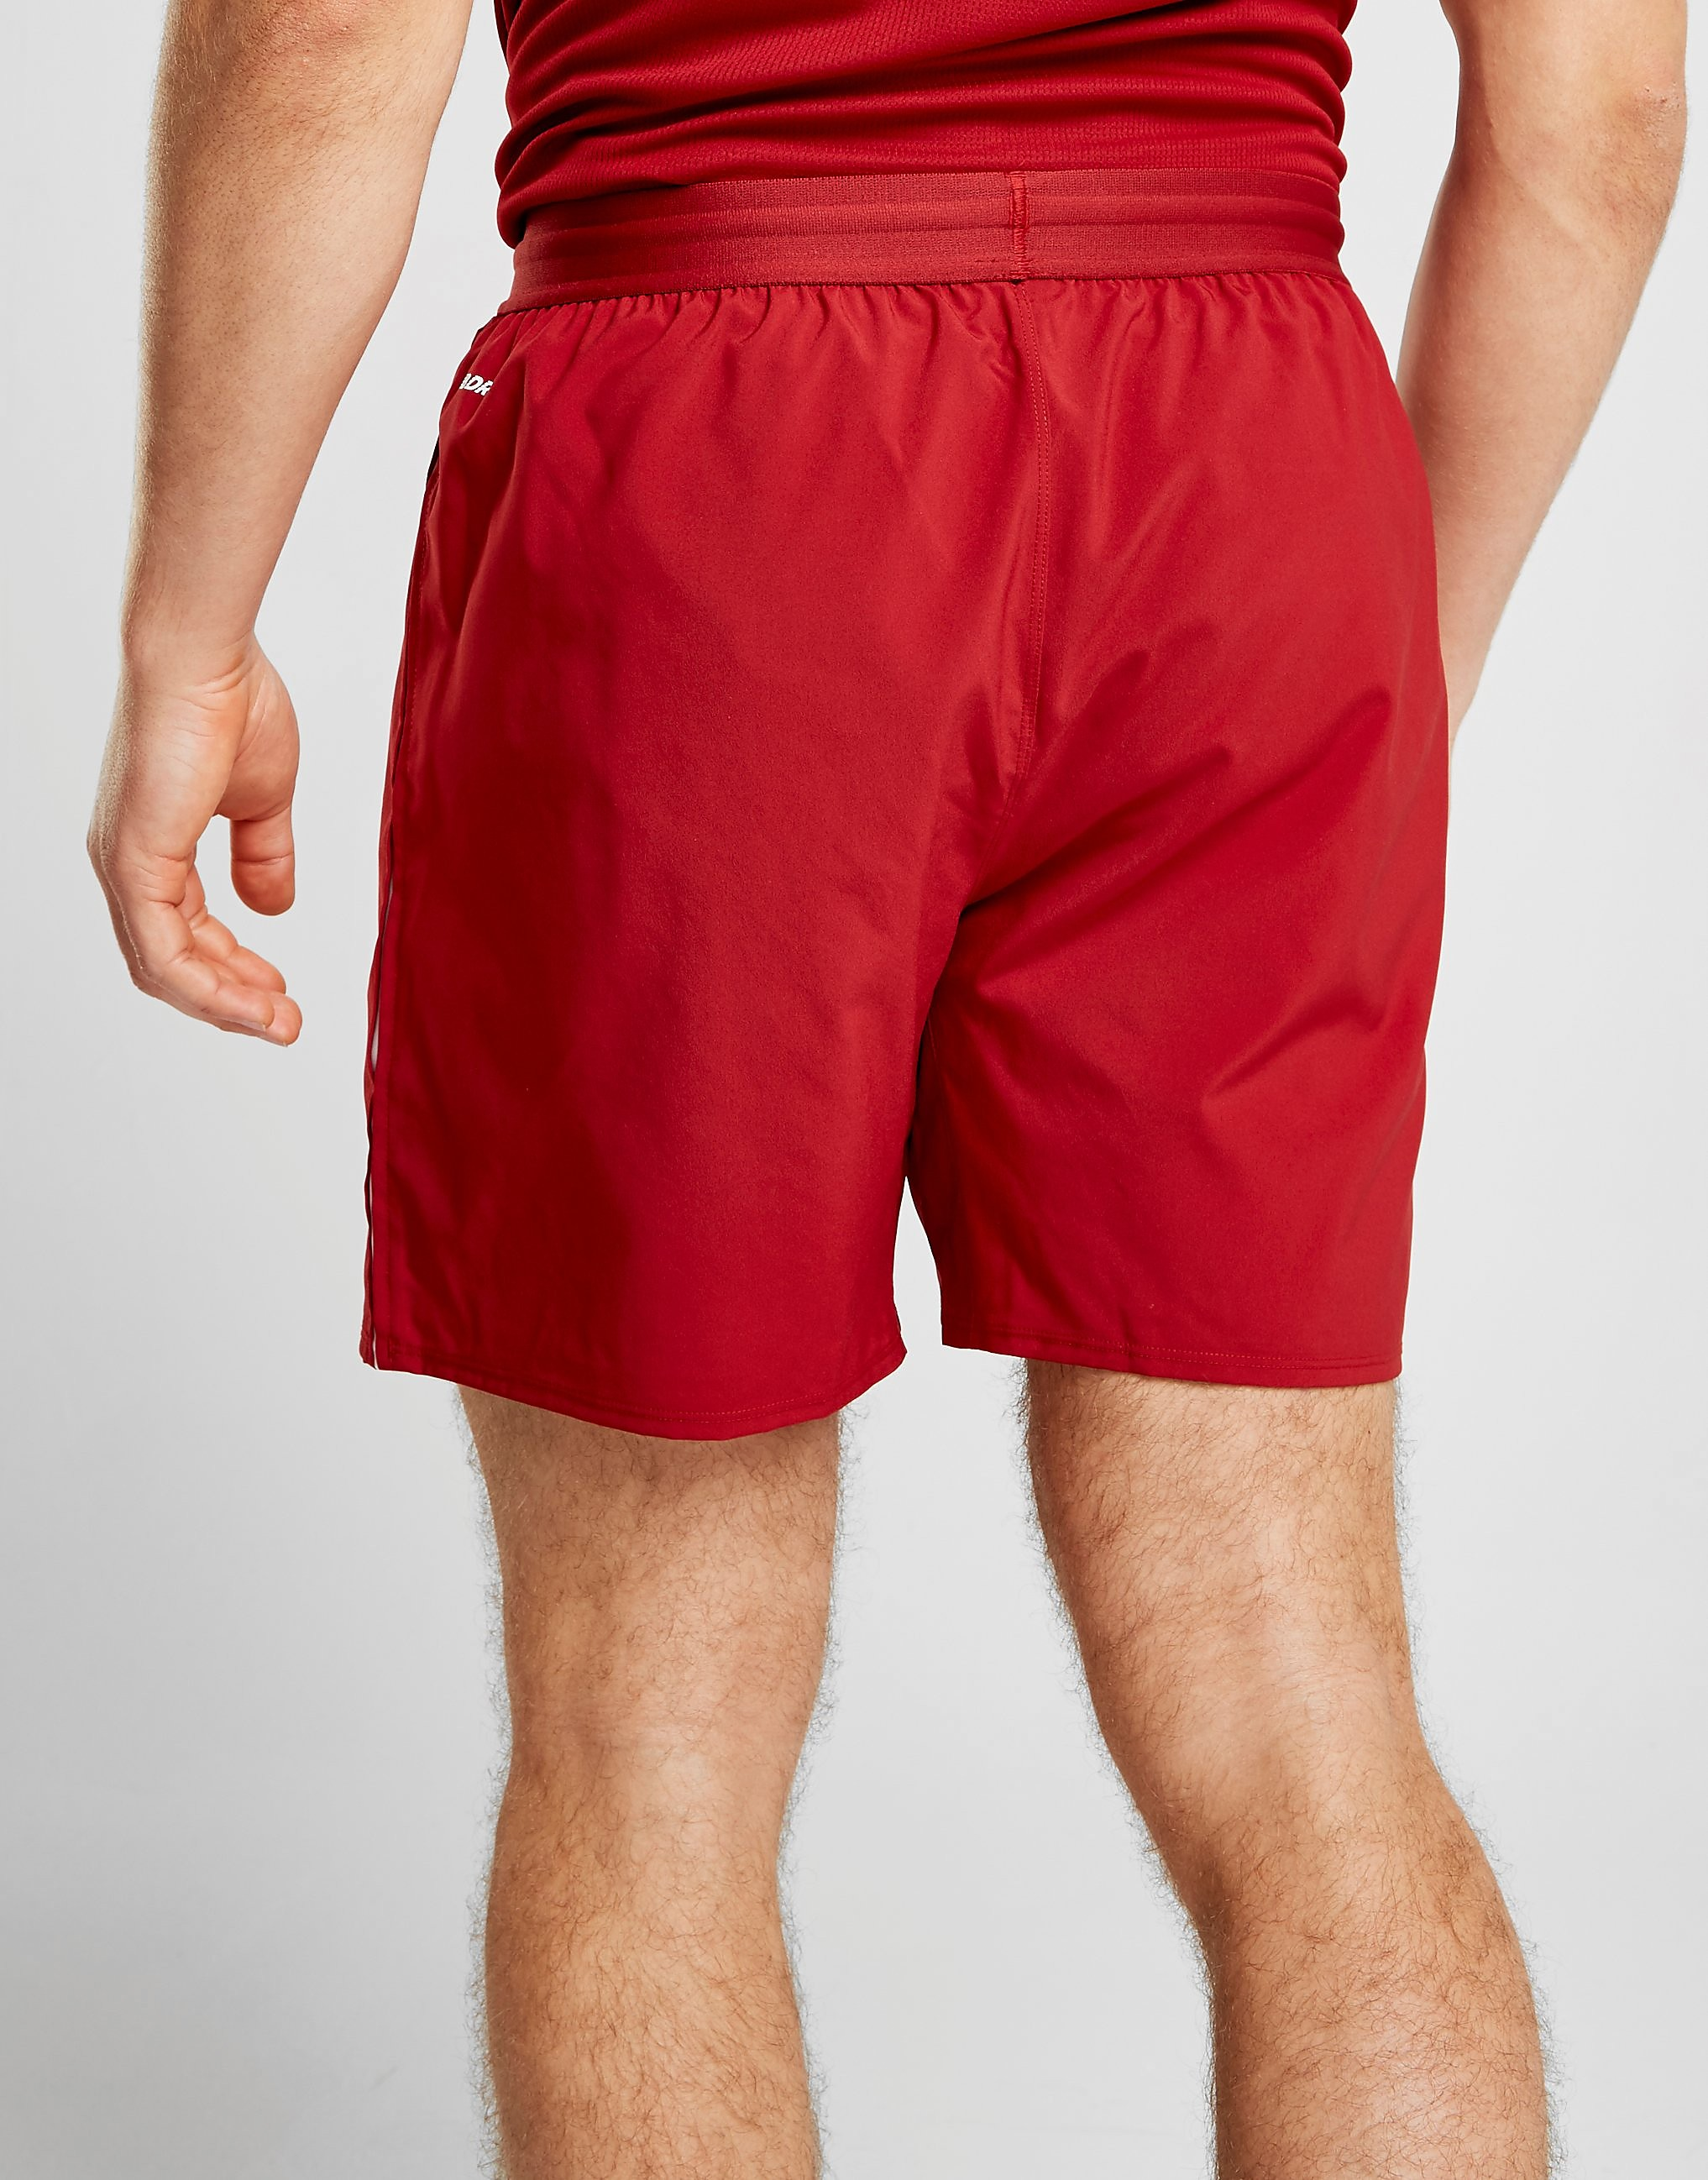 New Balance Liverpool FC 2018 Home Shorts PRE ORDER